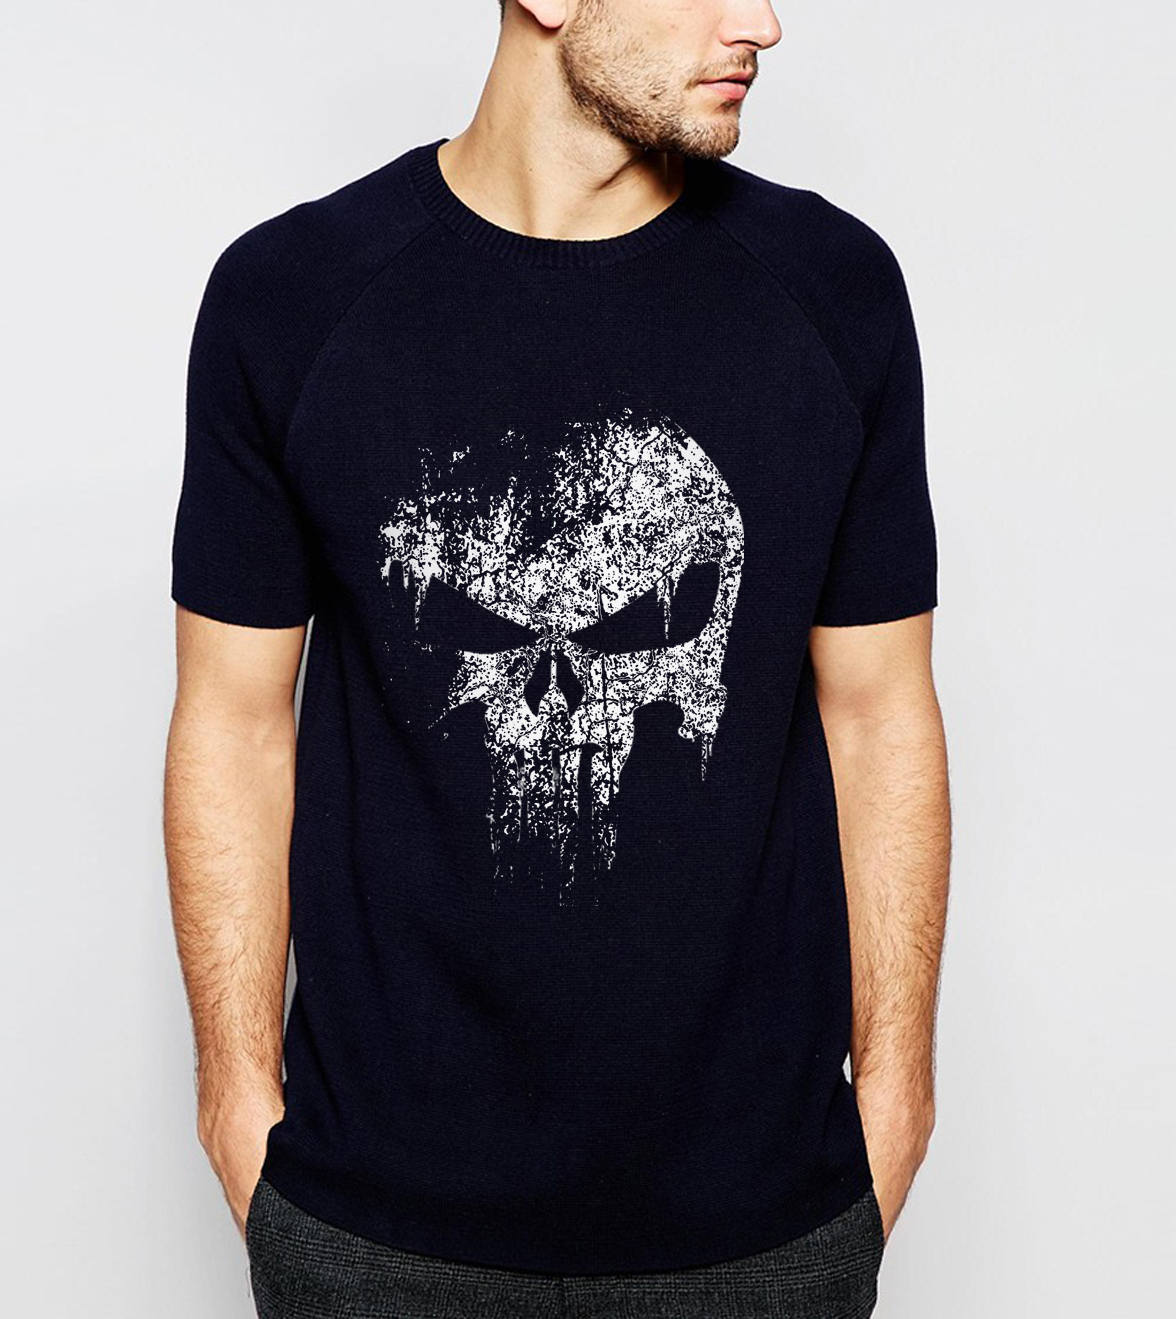 Supper Hero Series Punisher Skull personality t shirts 2018 Summer casual hipster 100% Cotton High Quality hip hop tops tees